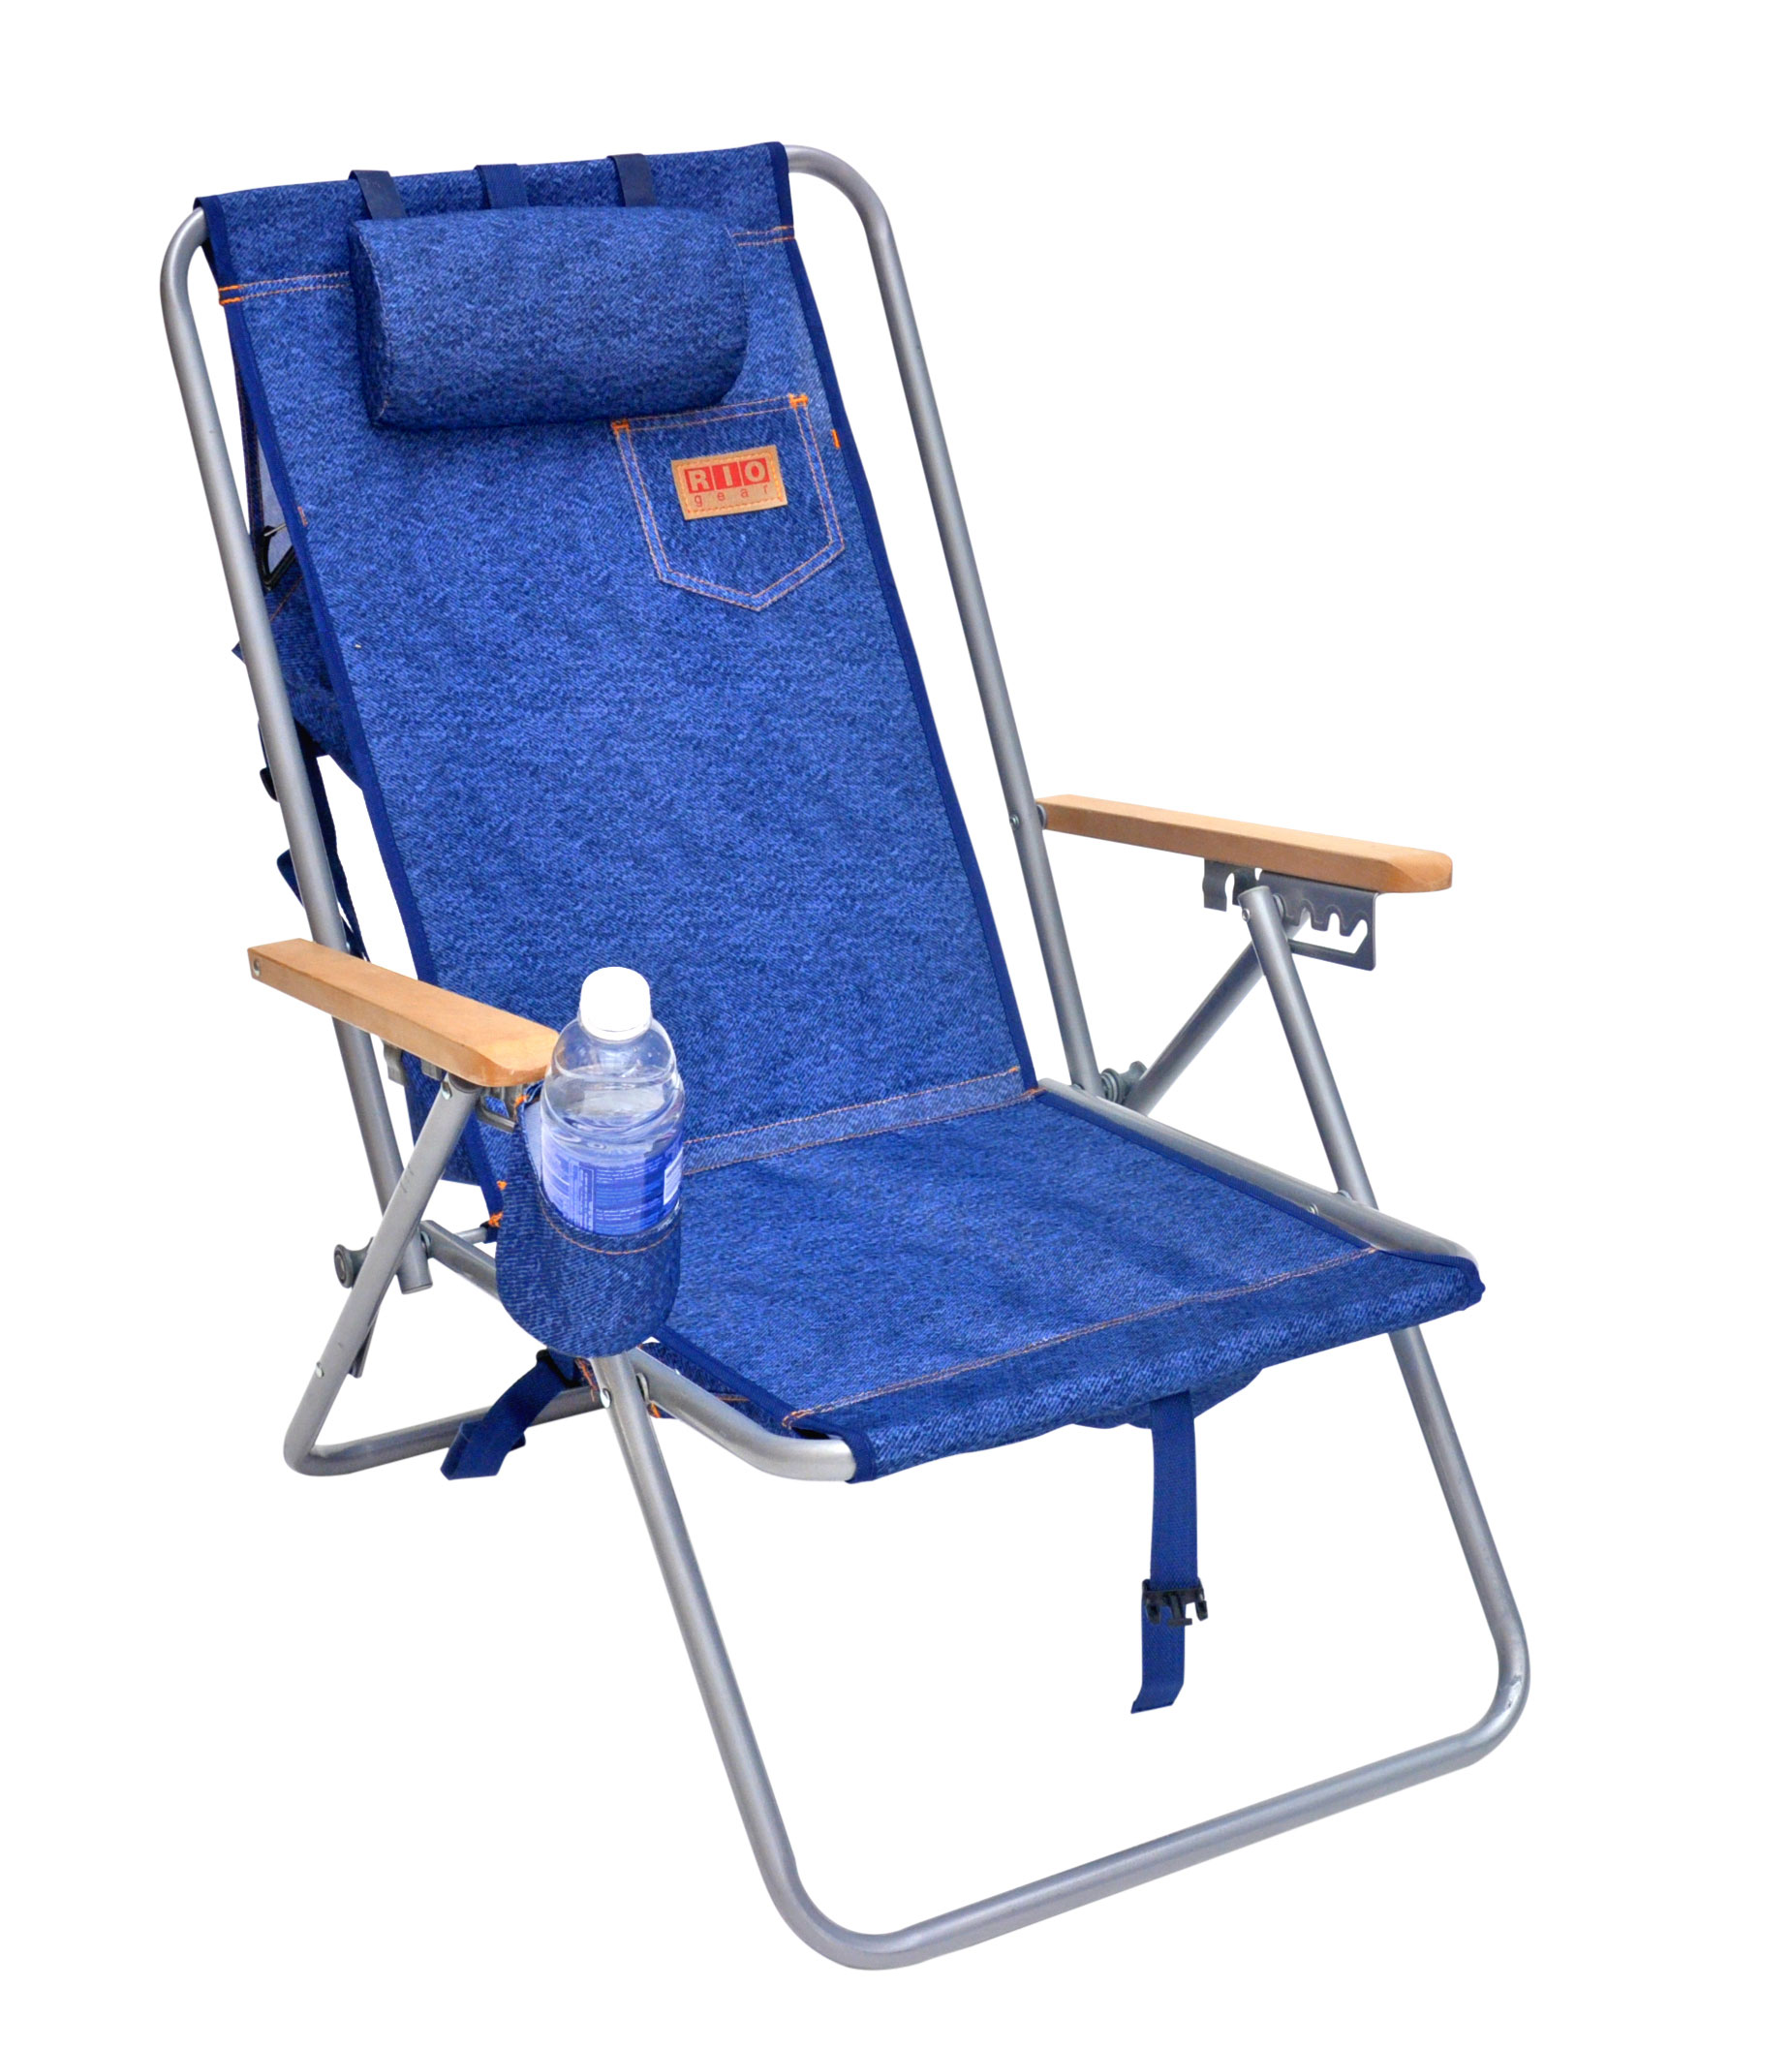 HiBack Deluxe Steel Backpack Chair with Storage Pouch  eBay